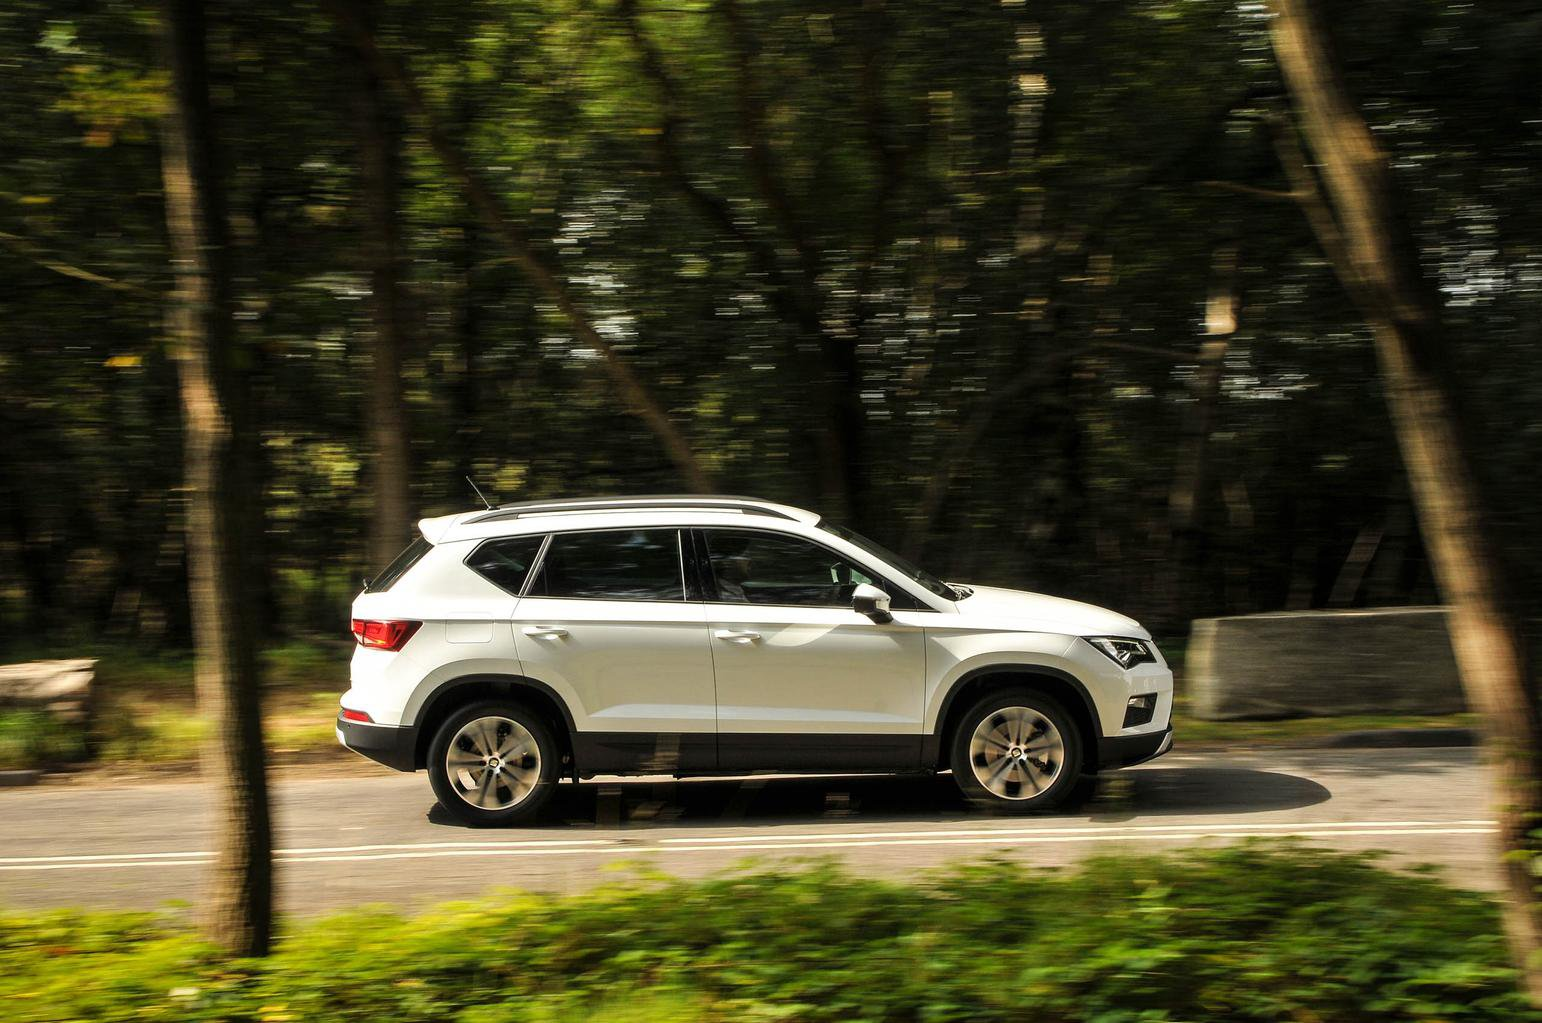 2016 Seat Ateca SE 1.0 TSI Ecomotive review